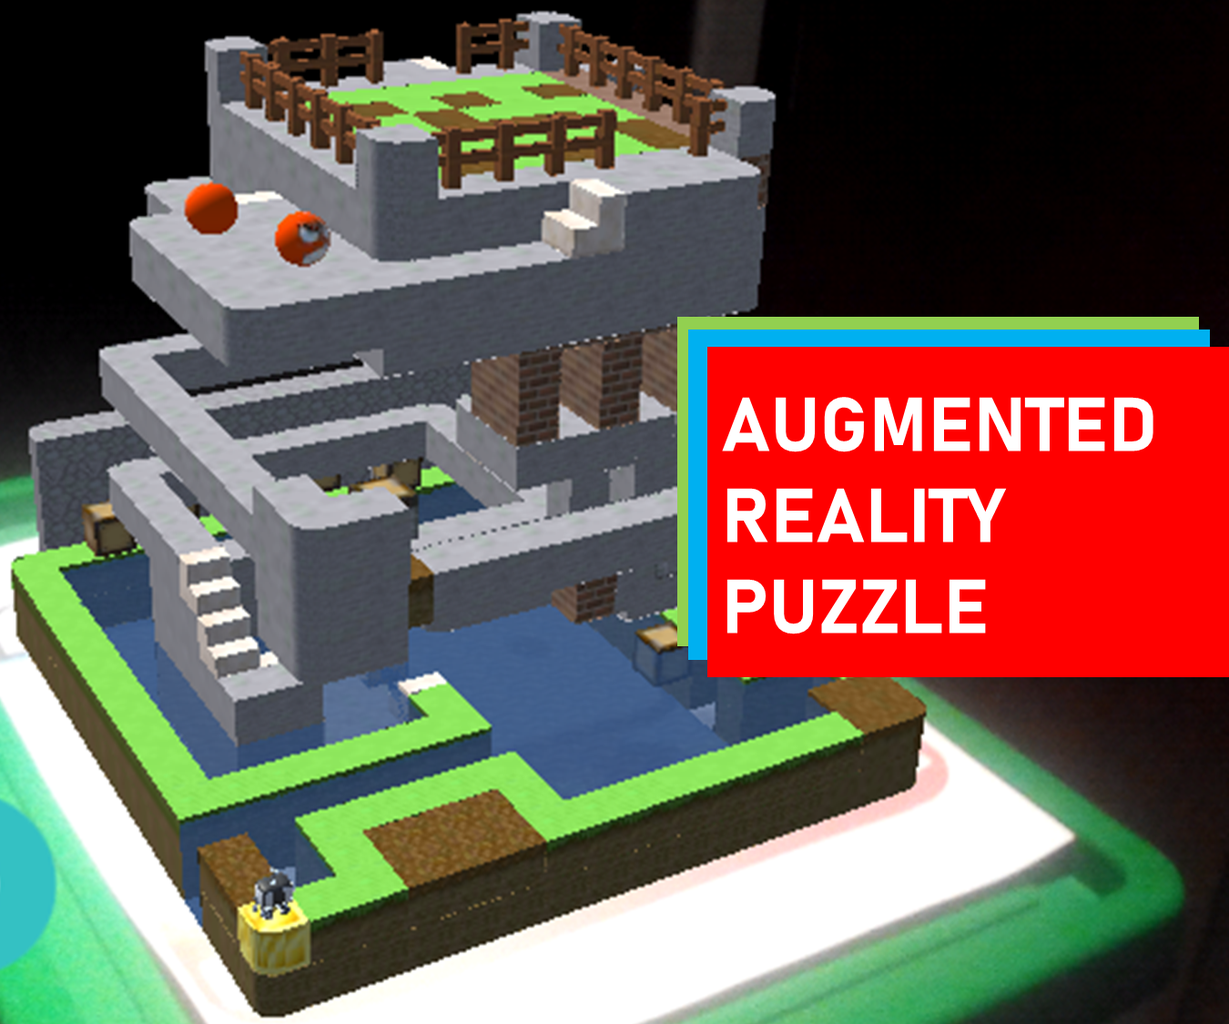 Augmented Reality Puzzle